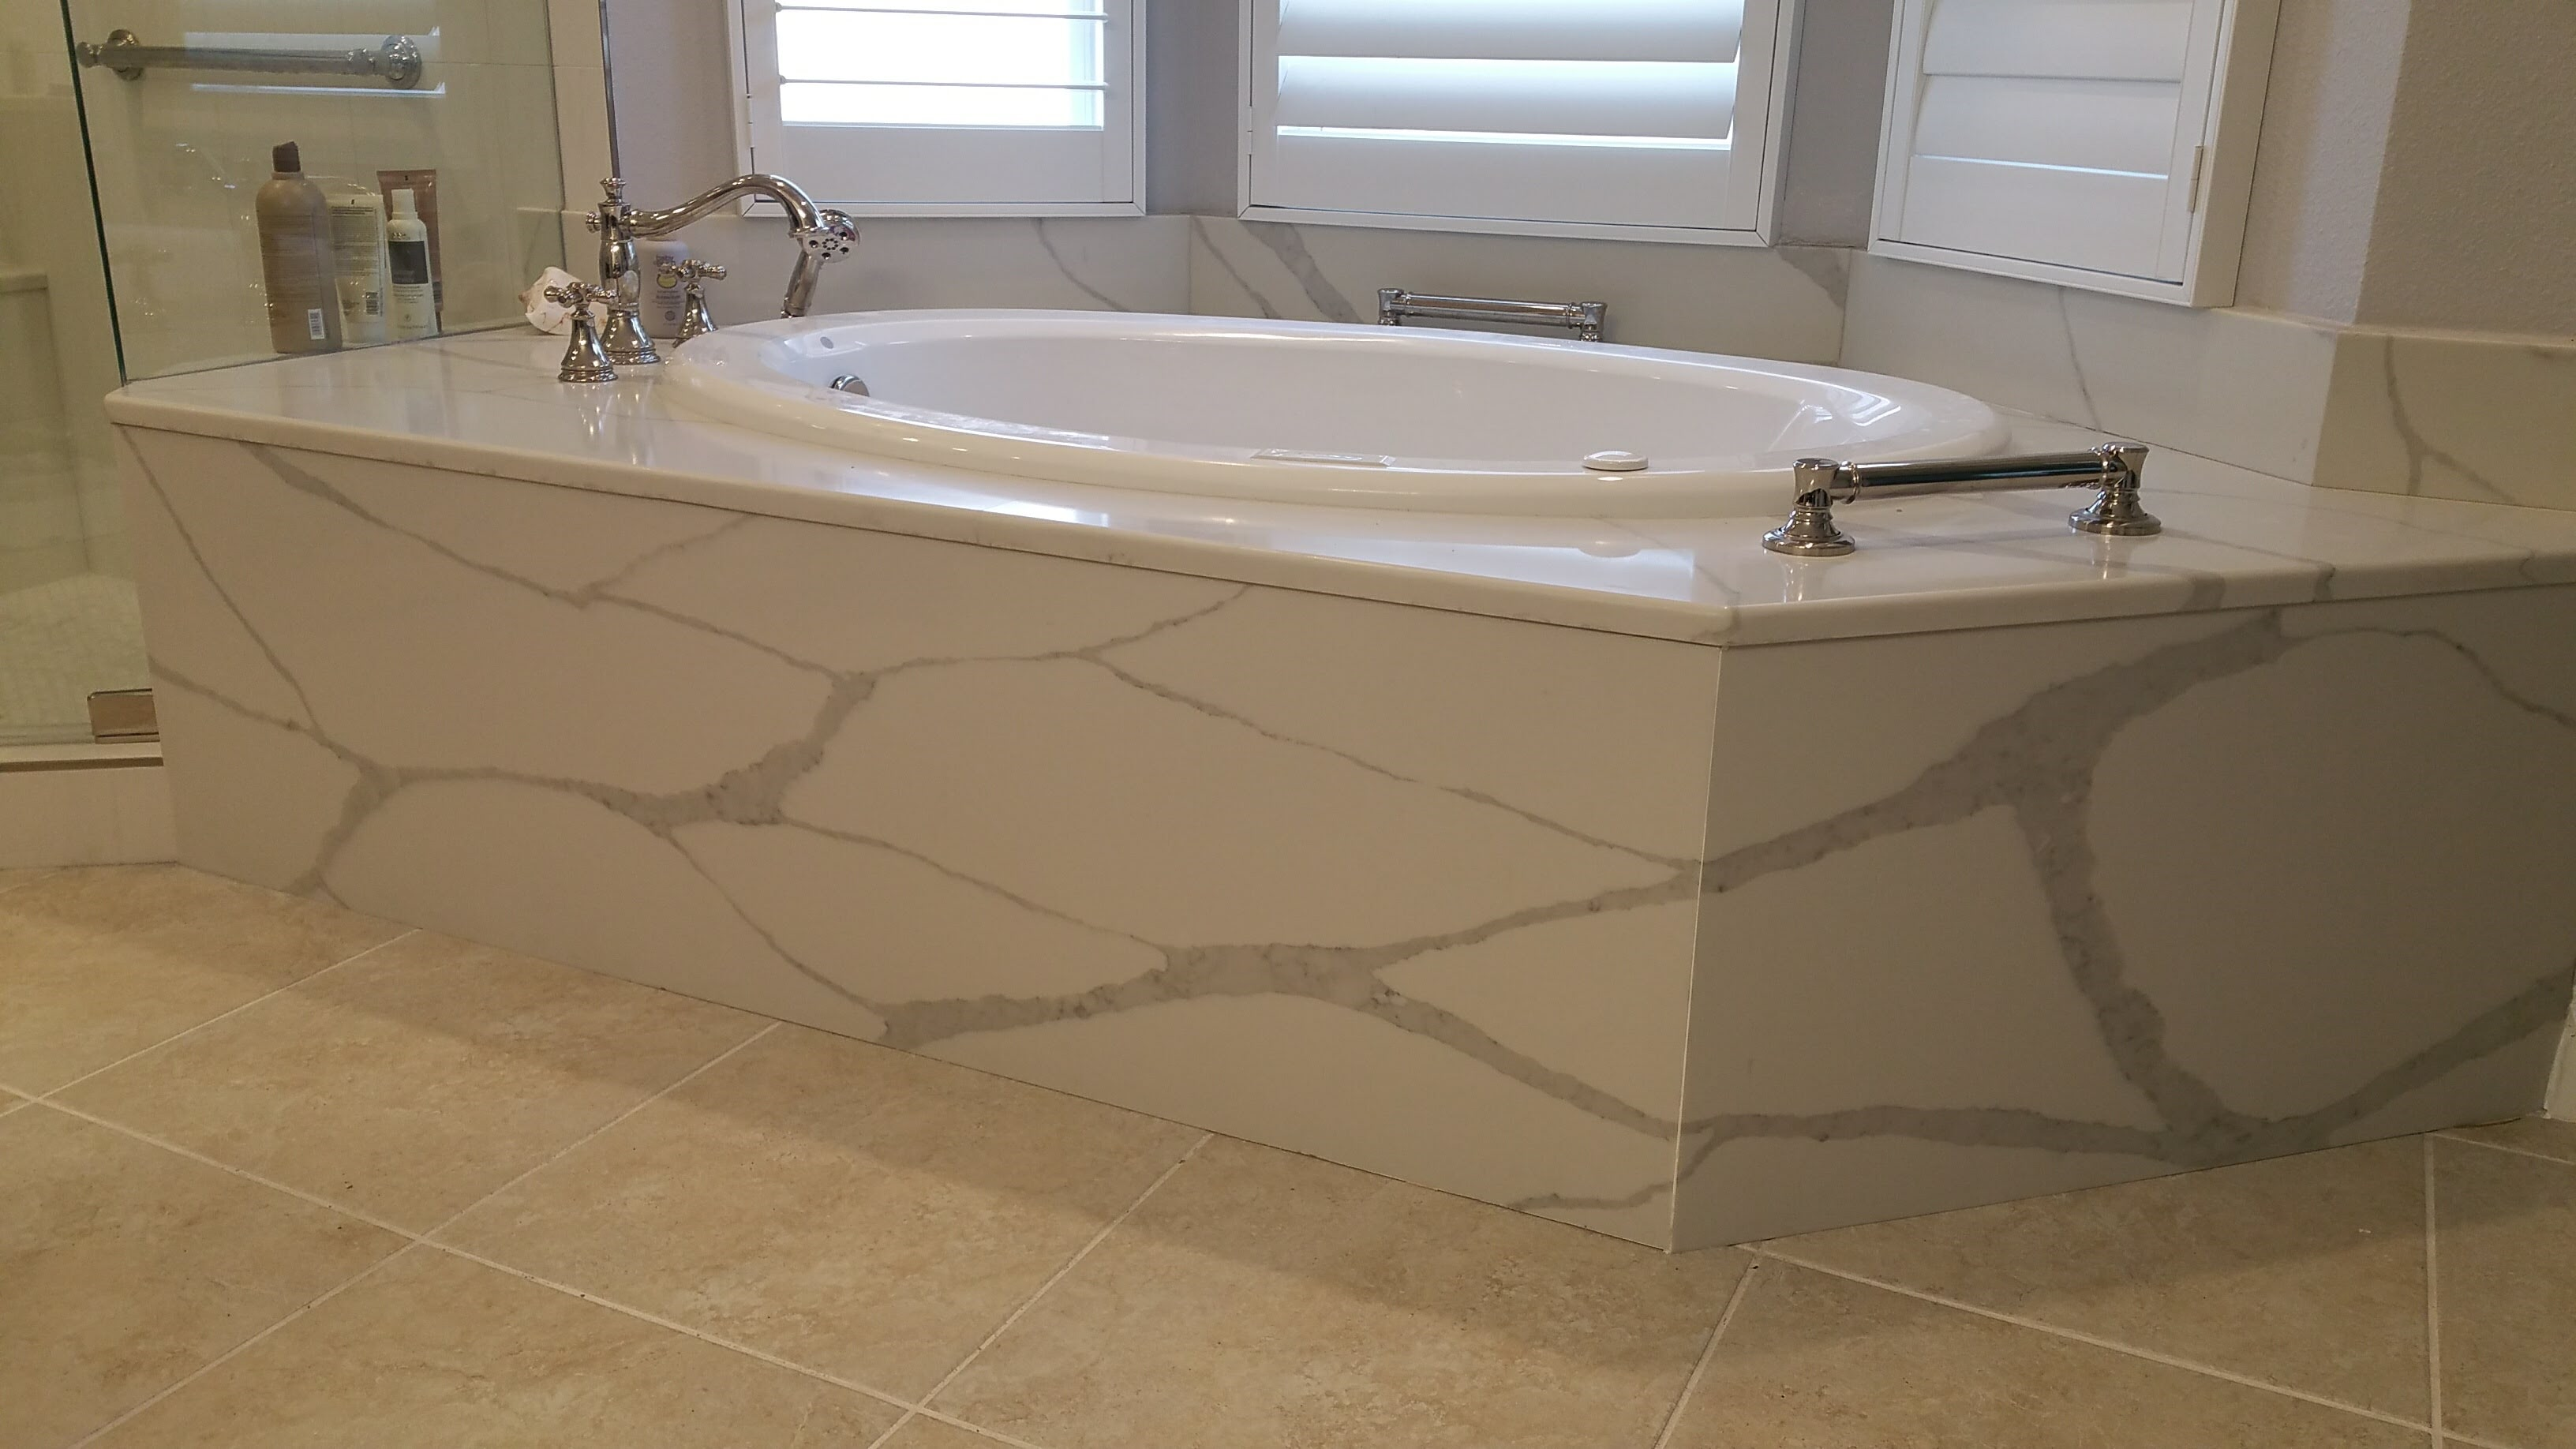 Relo Interior Services remodel with Coastal Bathroom theme and whirlpool tub